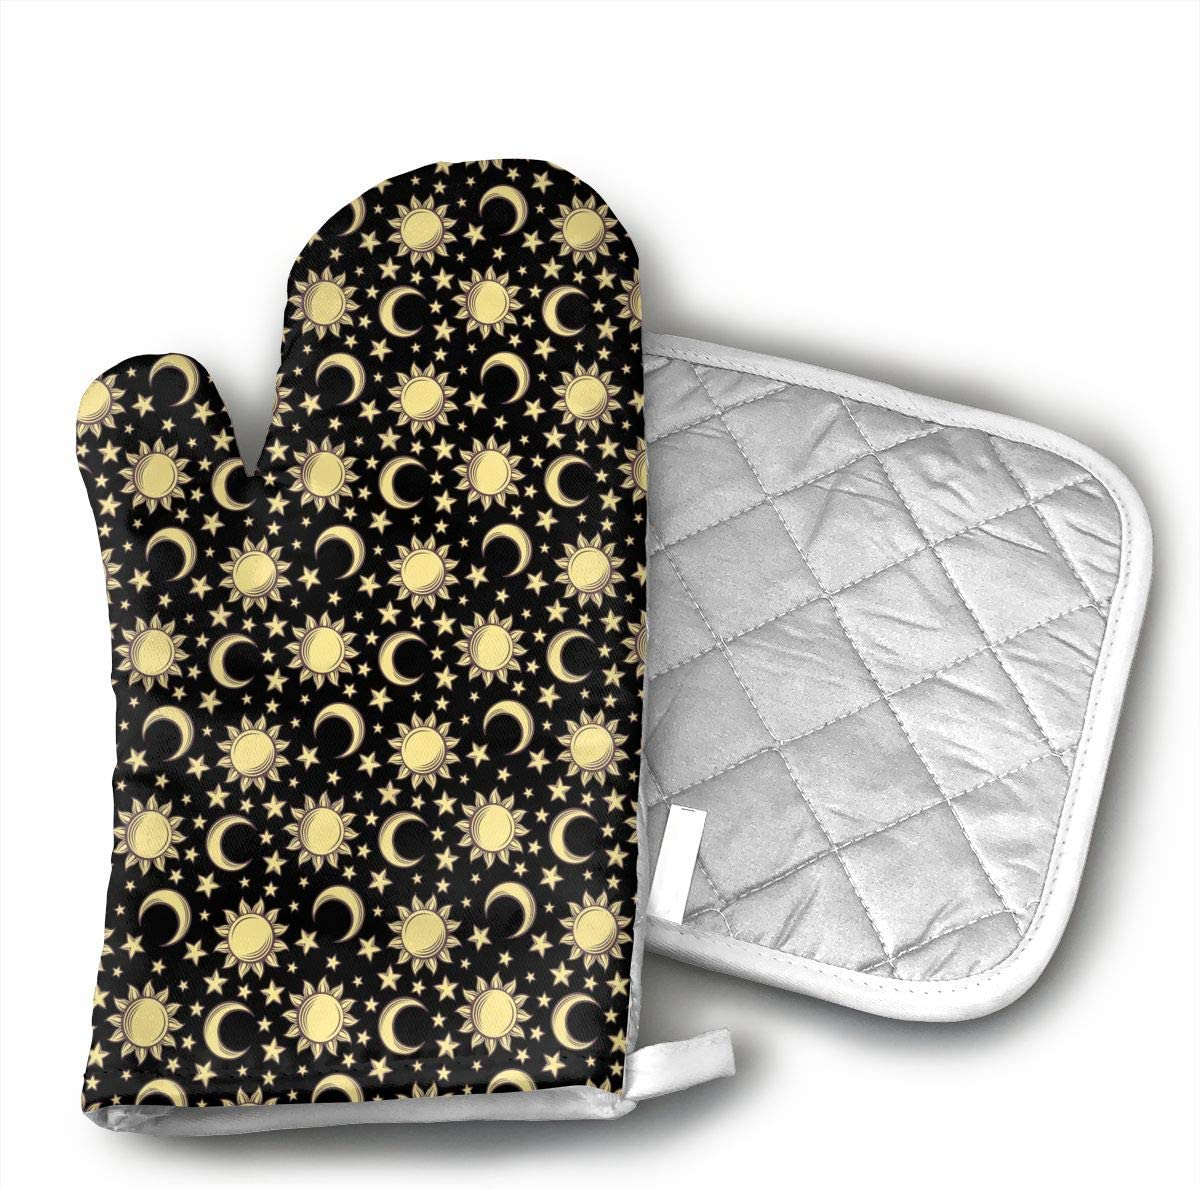 TRENDCAT Sun Moon Star Oven Mitts and Potholders (2-Piece Sets) - Extra Long Professional Heat Resistant Pot Holder & Baking Gloves - Food Safe